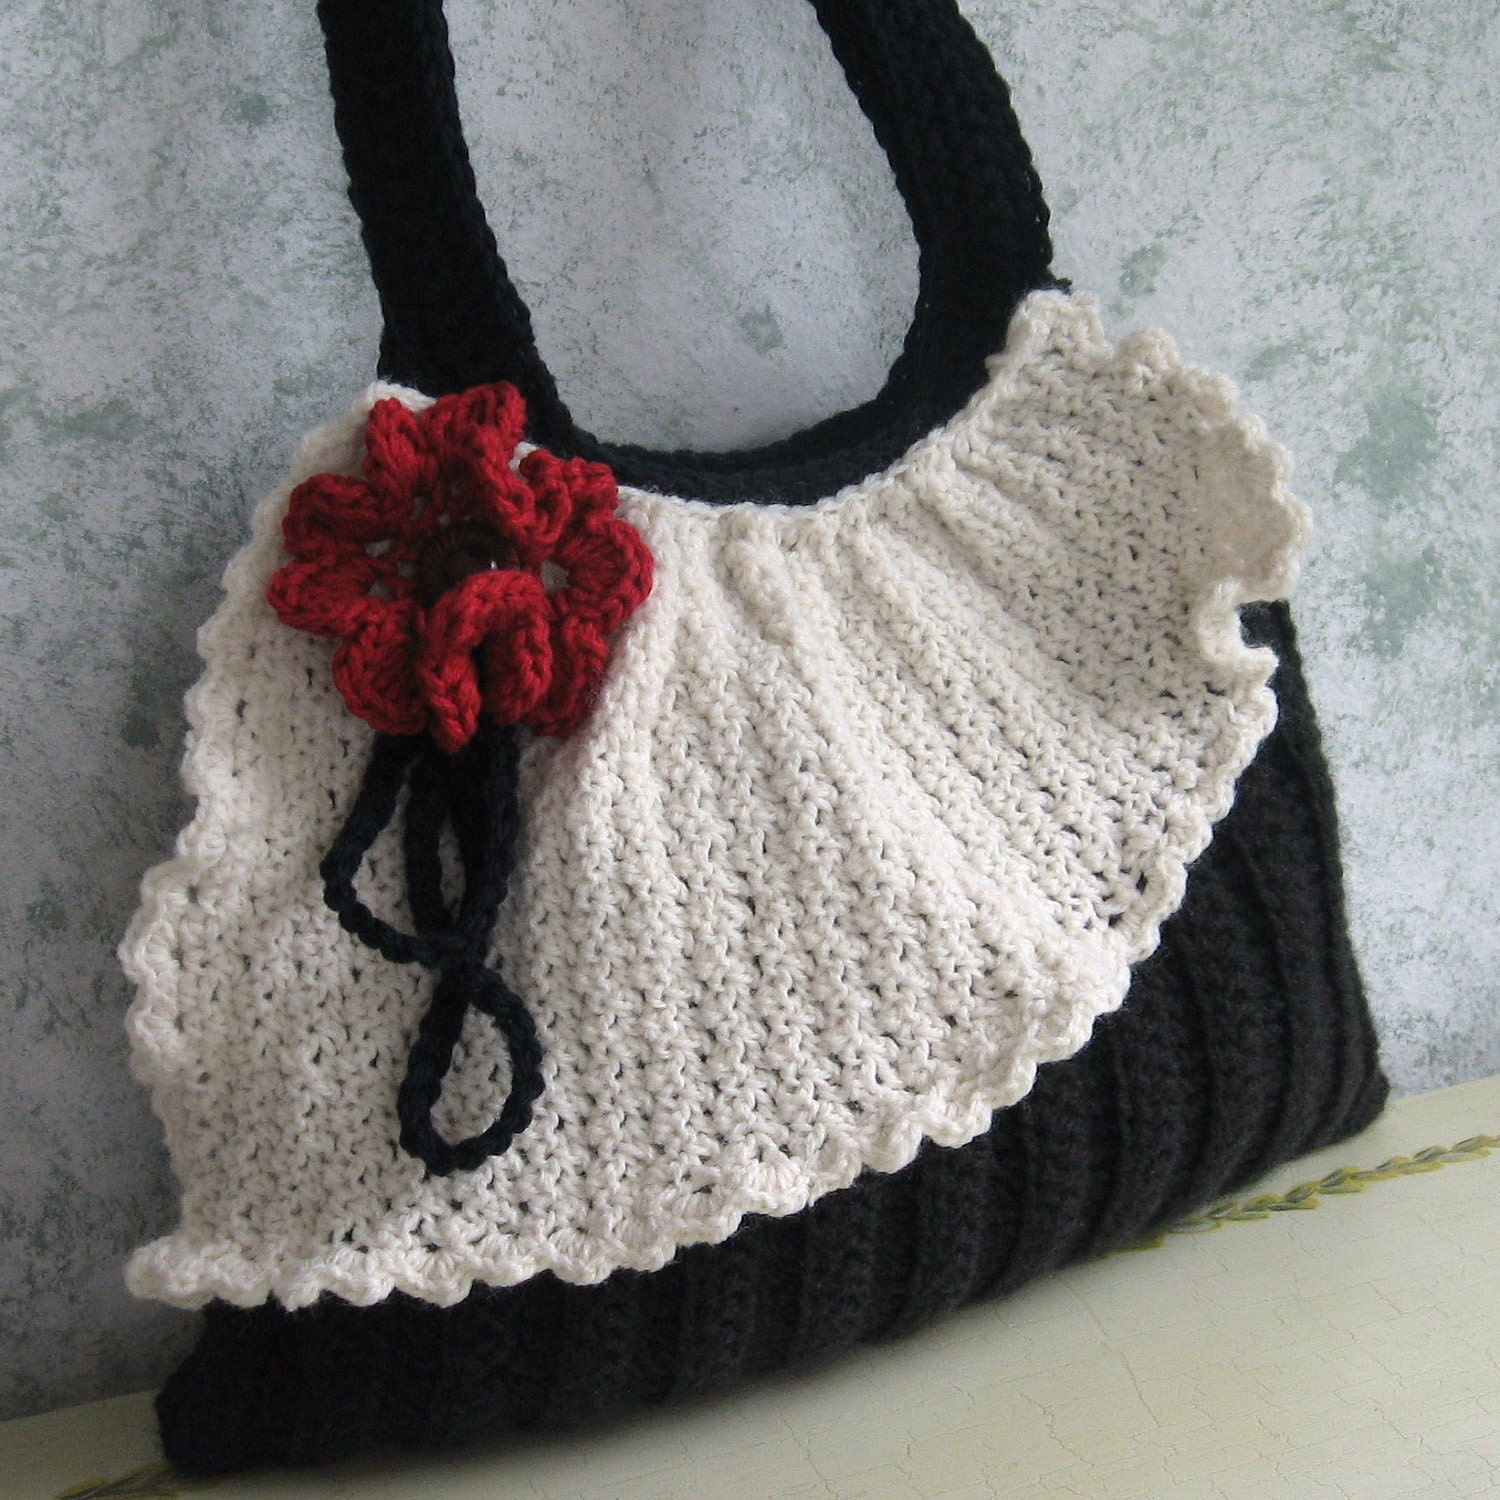 Crochet Handbags : Crochet Purse Pattern Pleated Bag With Drape And by kalliedesigns